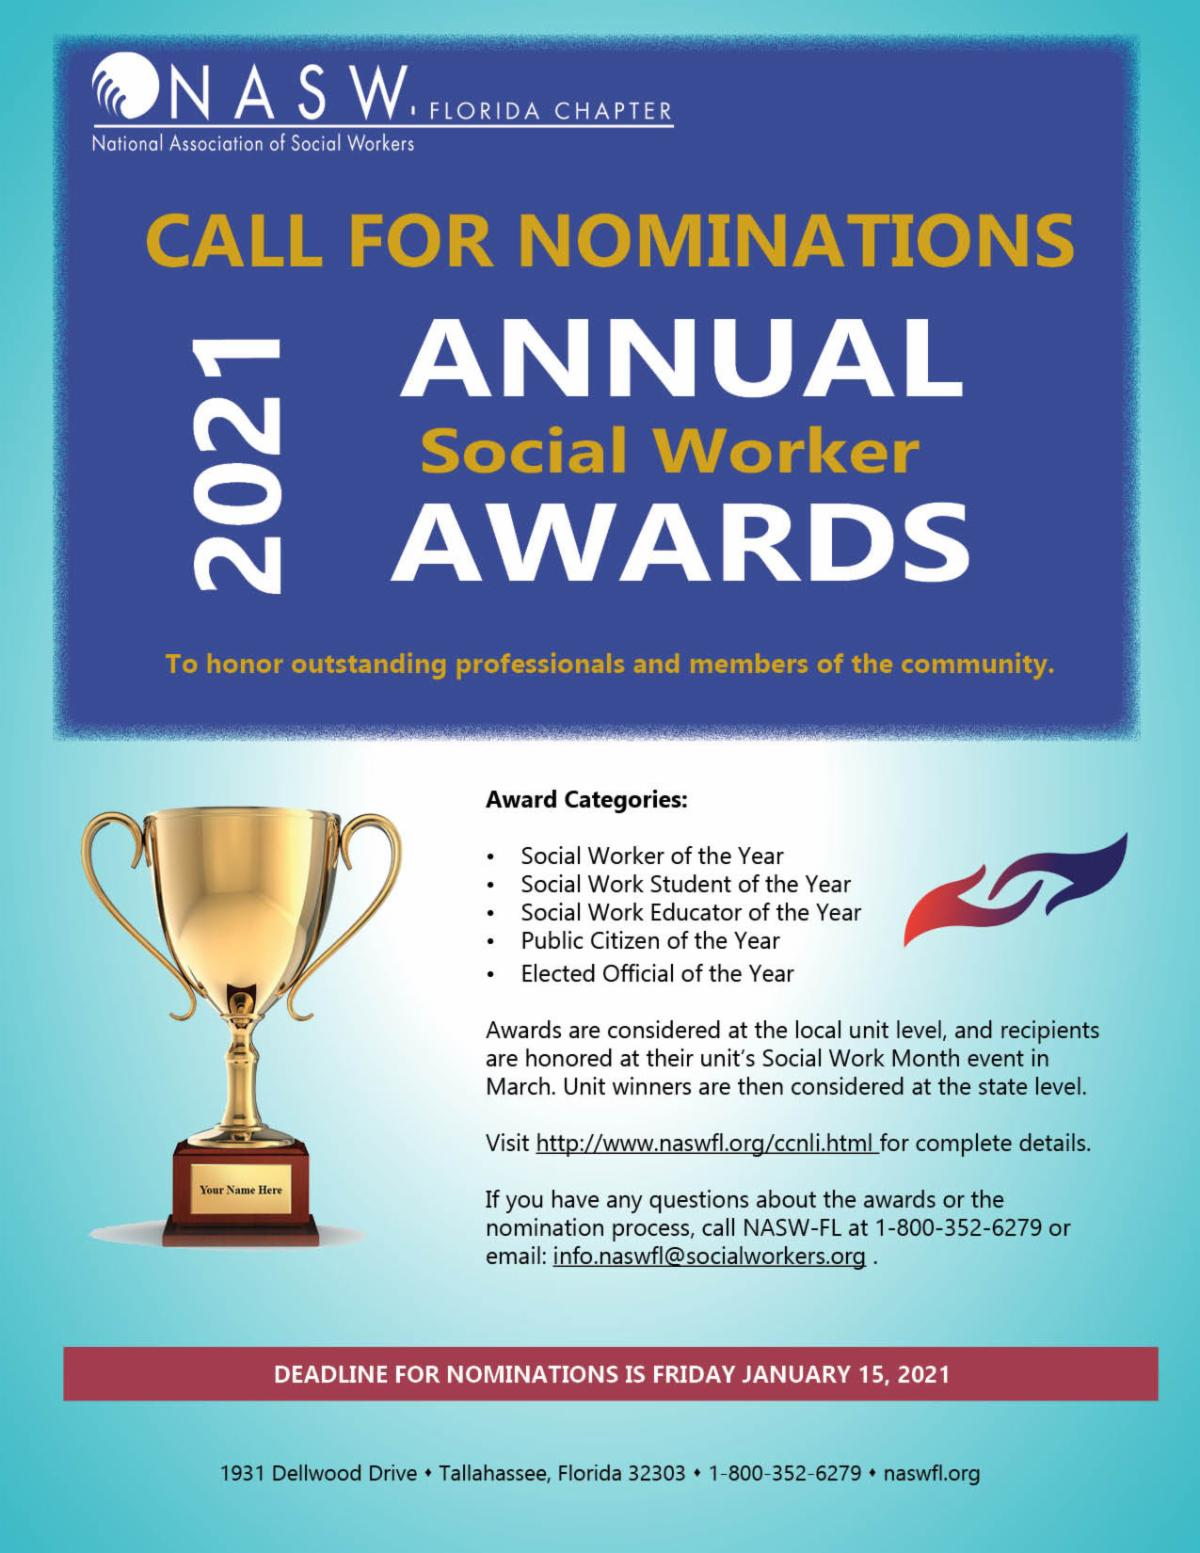 Annual Social Work Awards Nominations Open